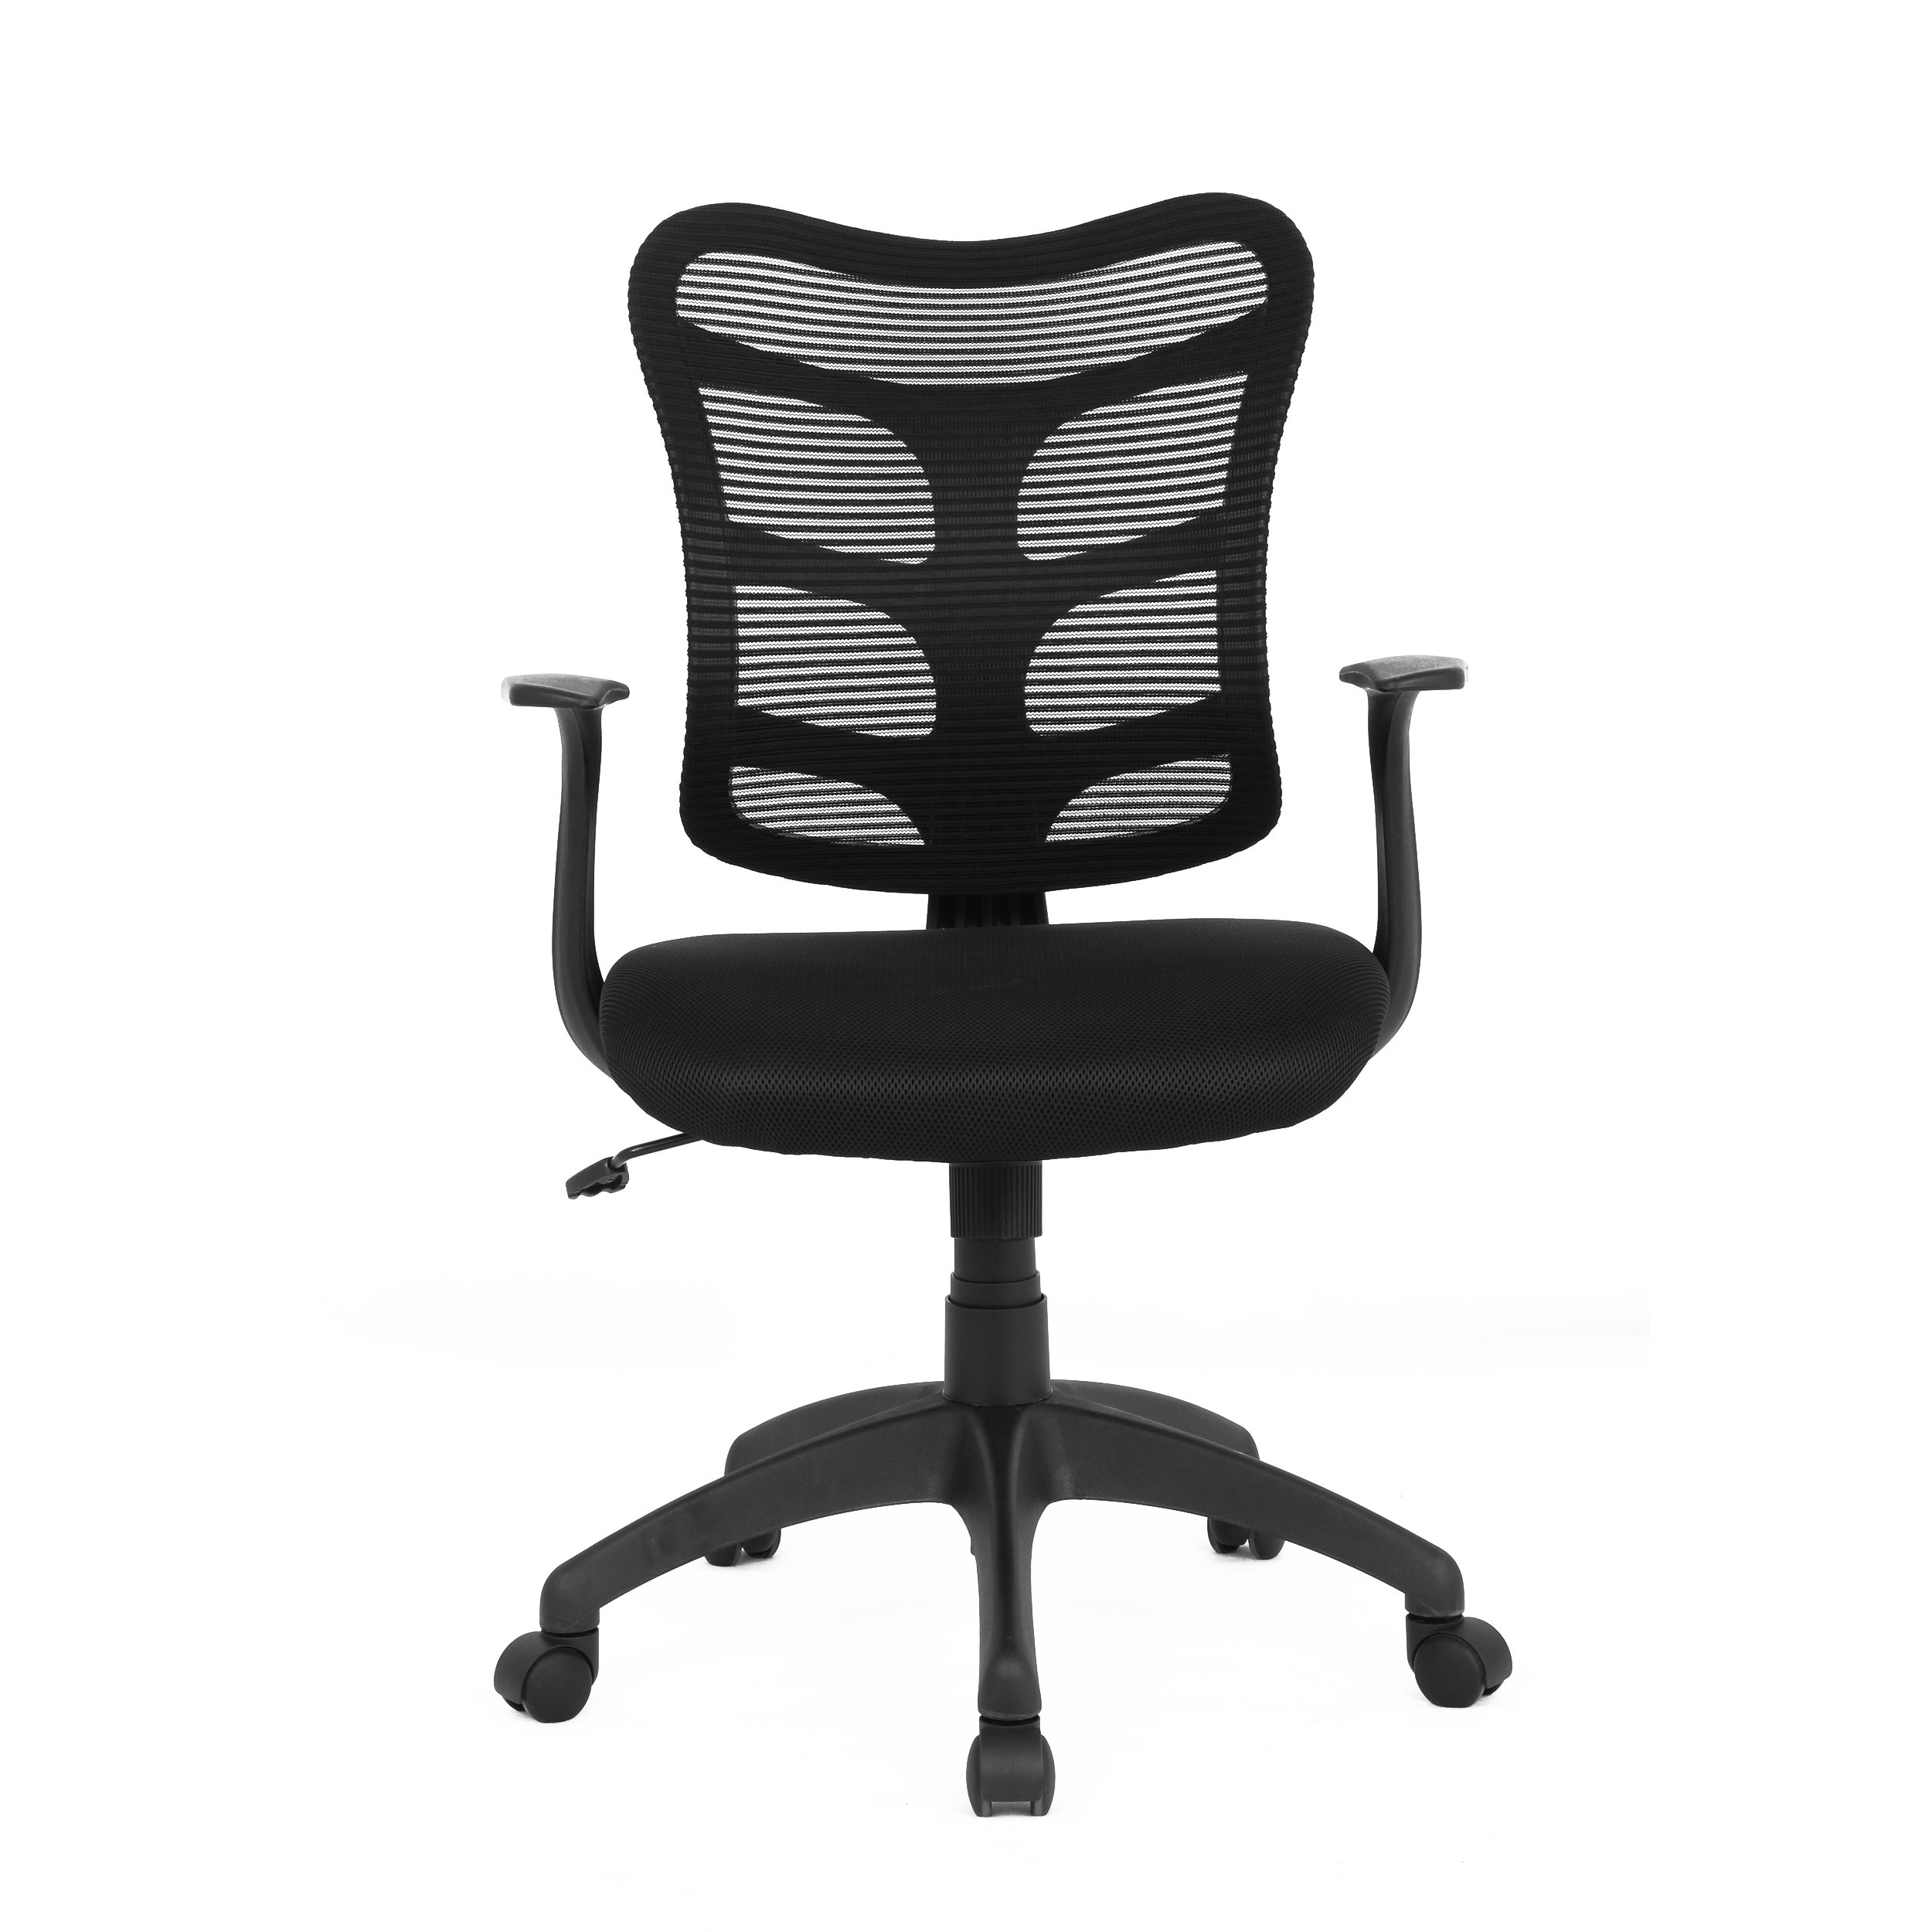 soges Mid Back Mesh Chair Adjustable Mesh Chair for Computer/Office Task Chair Swivel Chair with BIFMA Certification, Black HLC-0581-BK